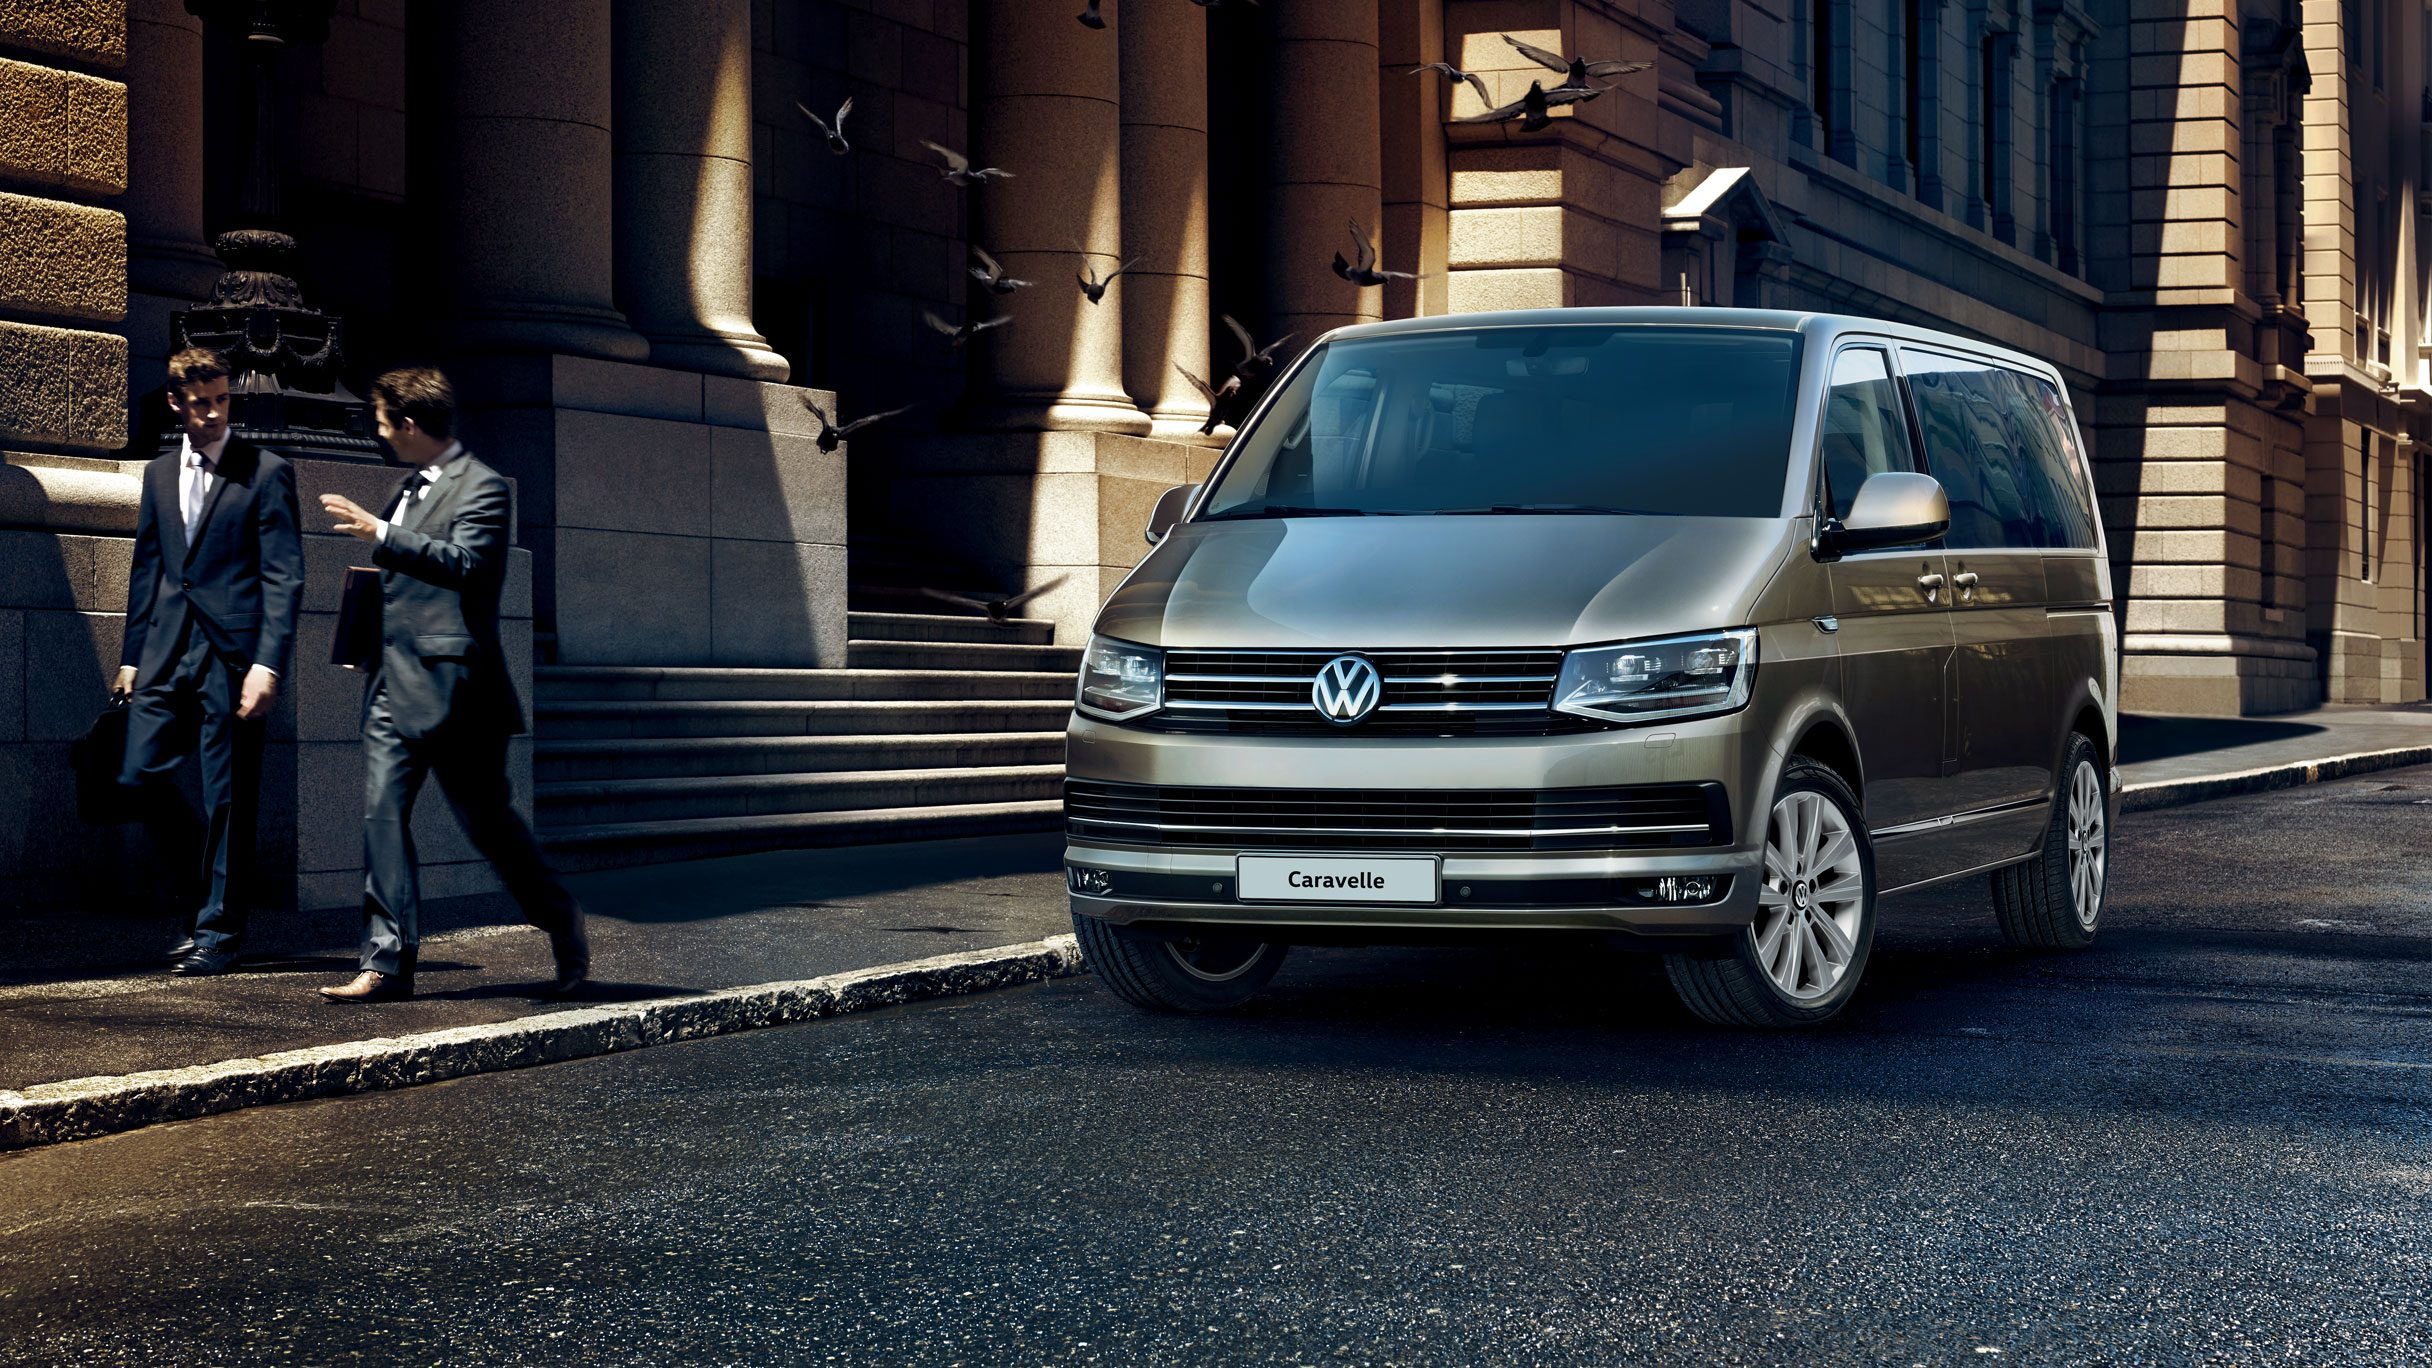 Volkswagen Caravelle specs and prices